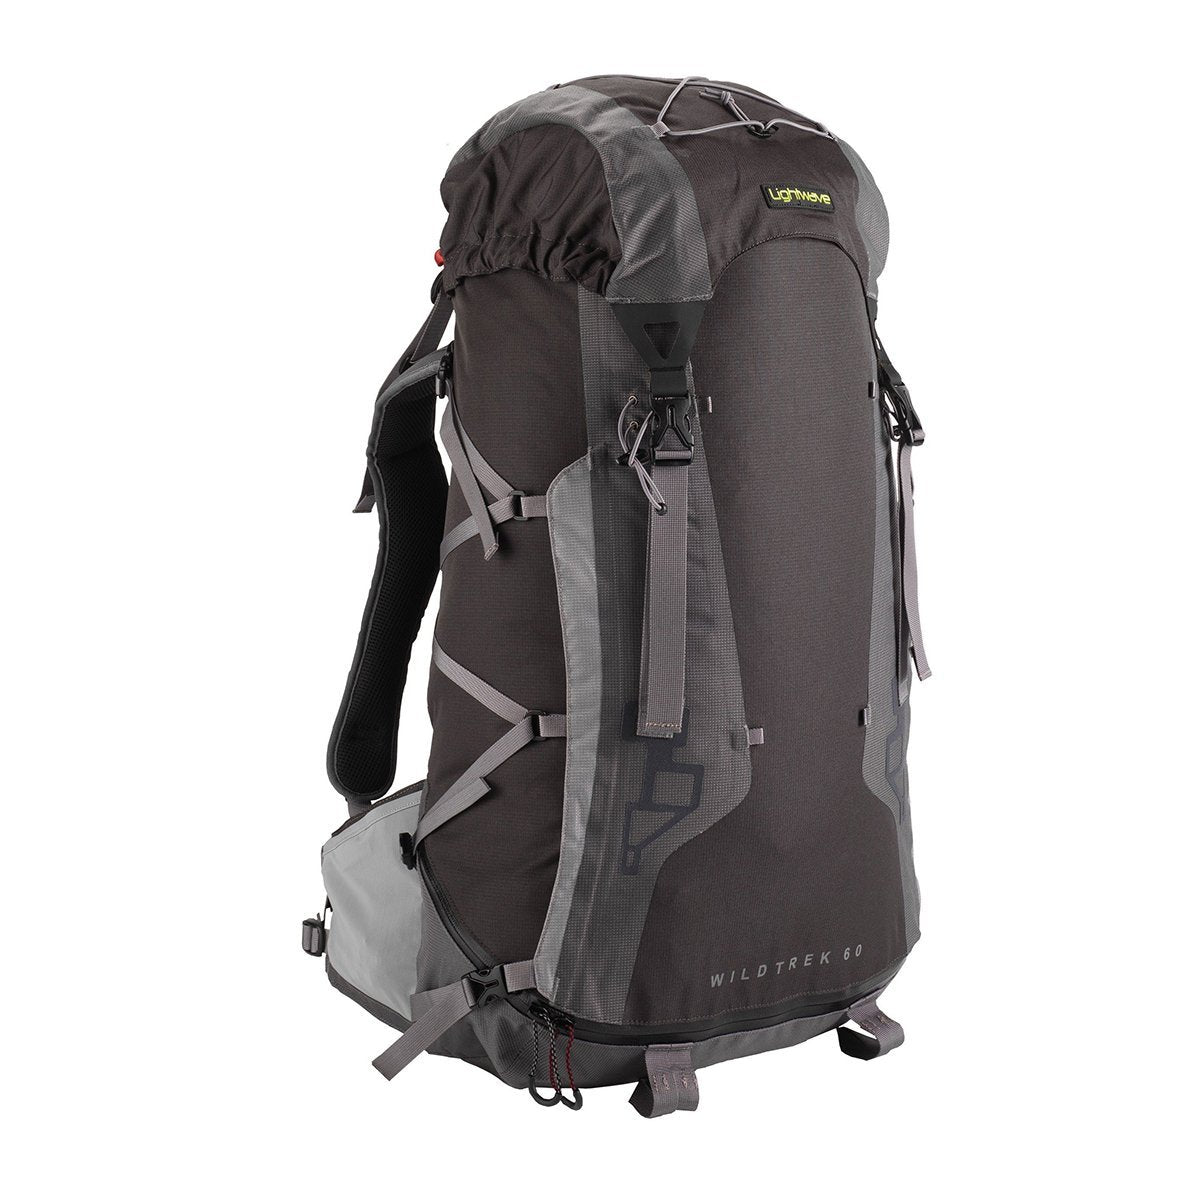 Lightwave » Wildtrek 70 Rucksack - Ultra-lightweight Hiking Backpack